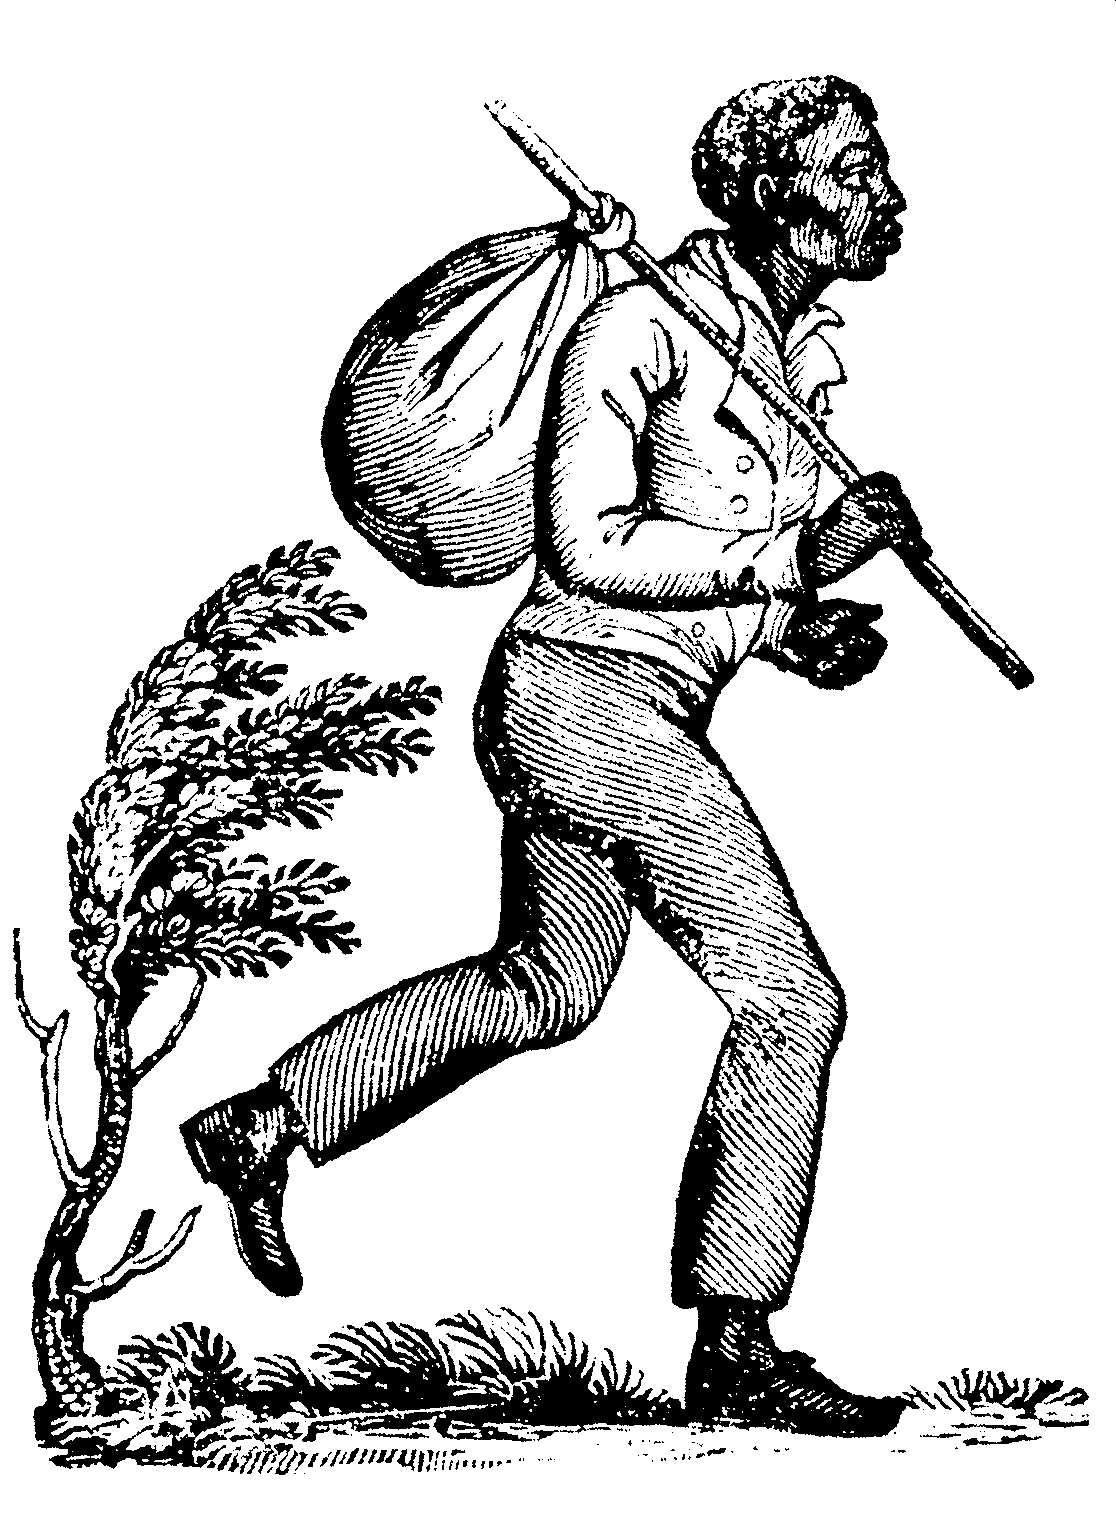 19th-century depiction of a runaway slave.